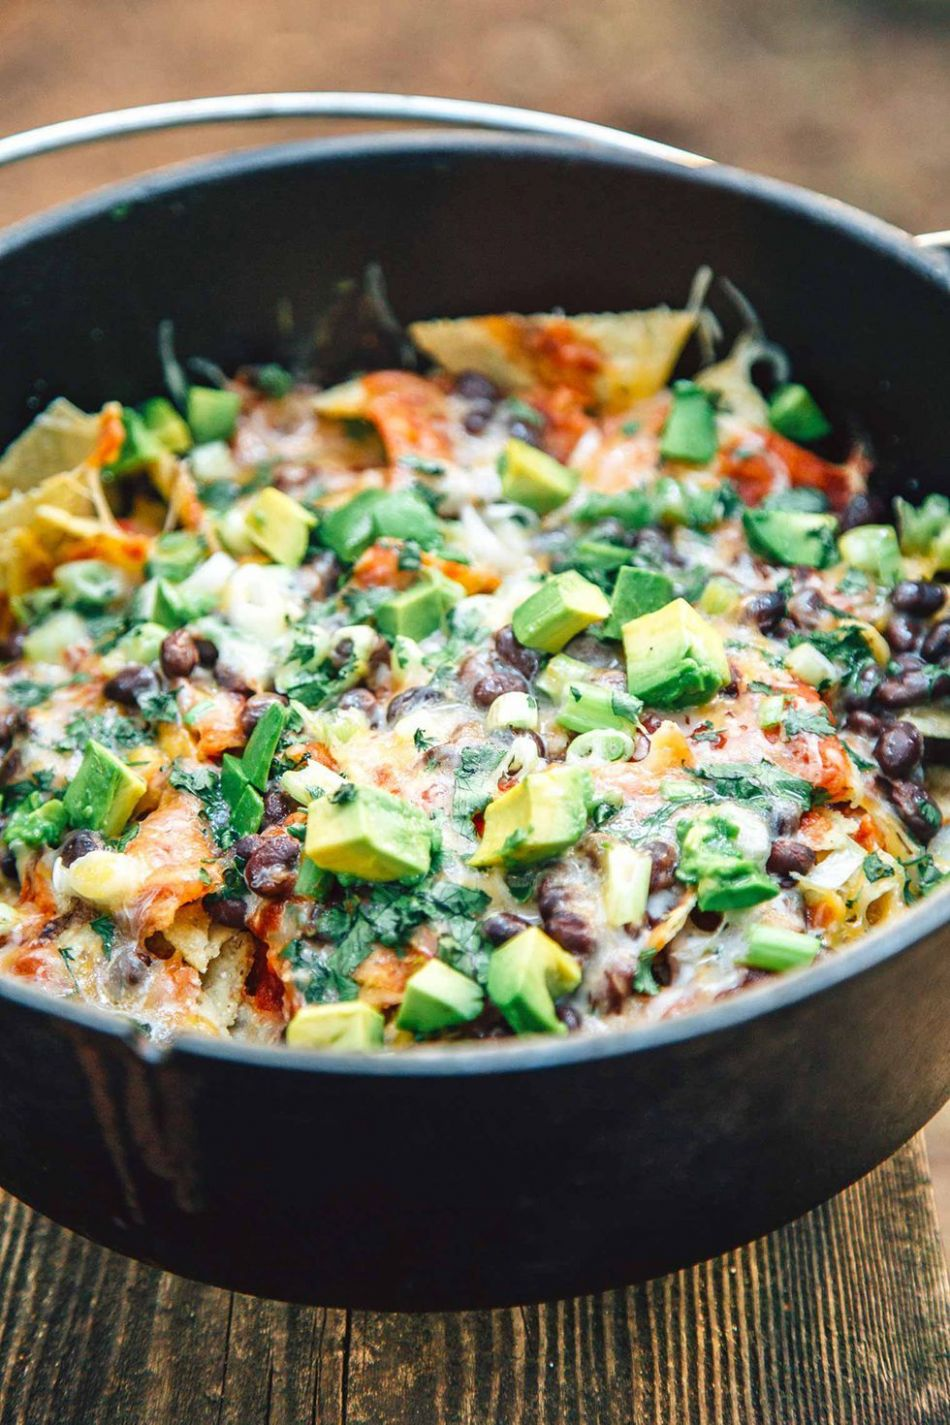 9 Easy Campfire Recipes - Best Camping Food Ideas for Your Next Trip - Recipes Cooking Outside